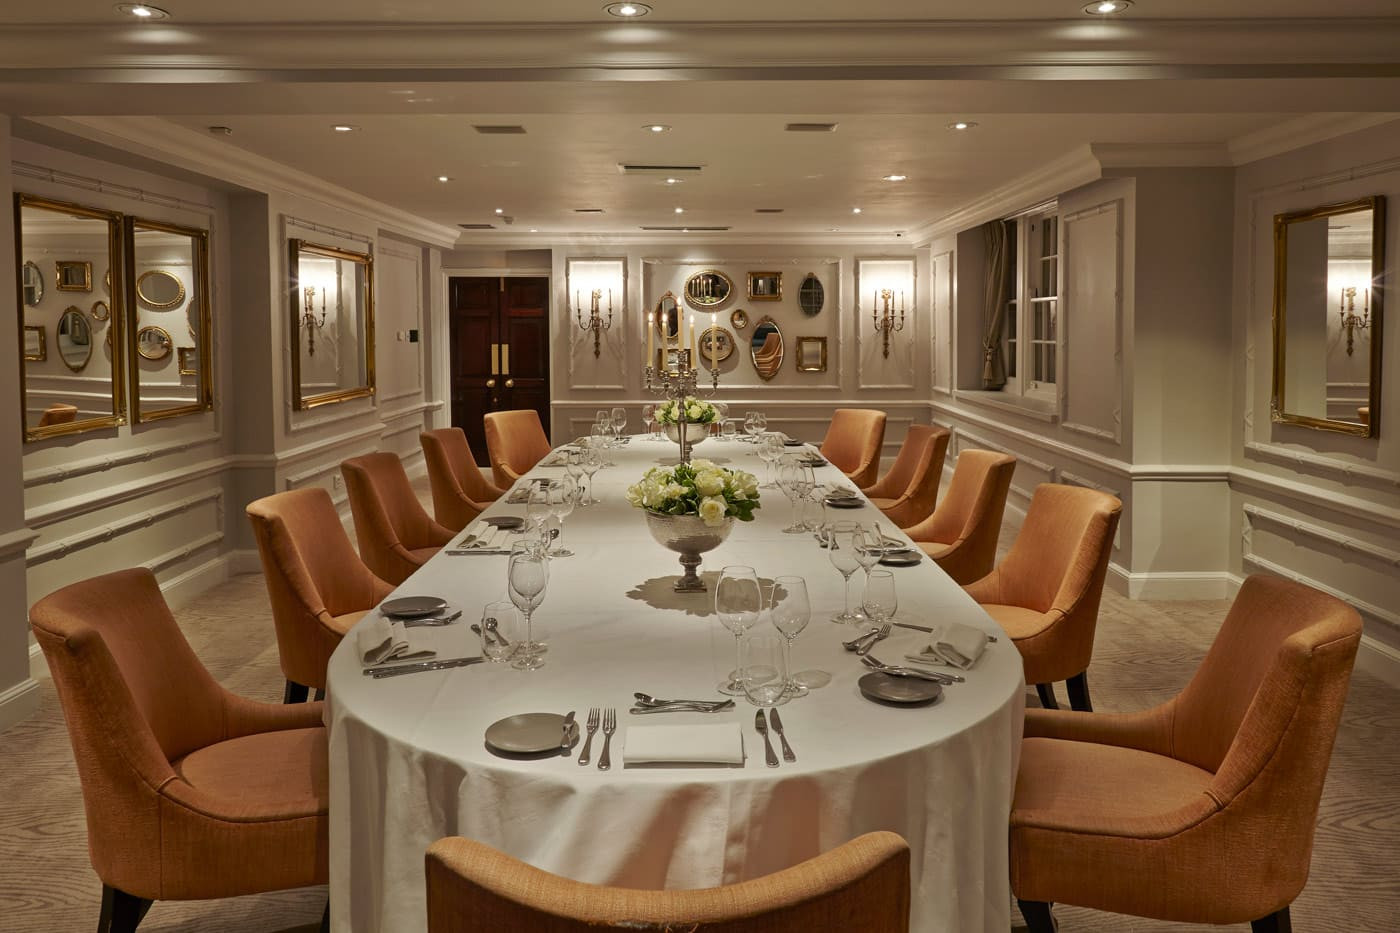 dukes hotel, small and intimate wedding venues, wedding venues, london wedding venues, small wedding venues